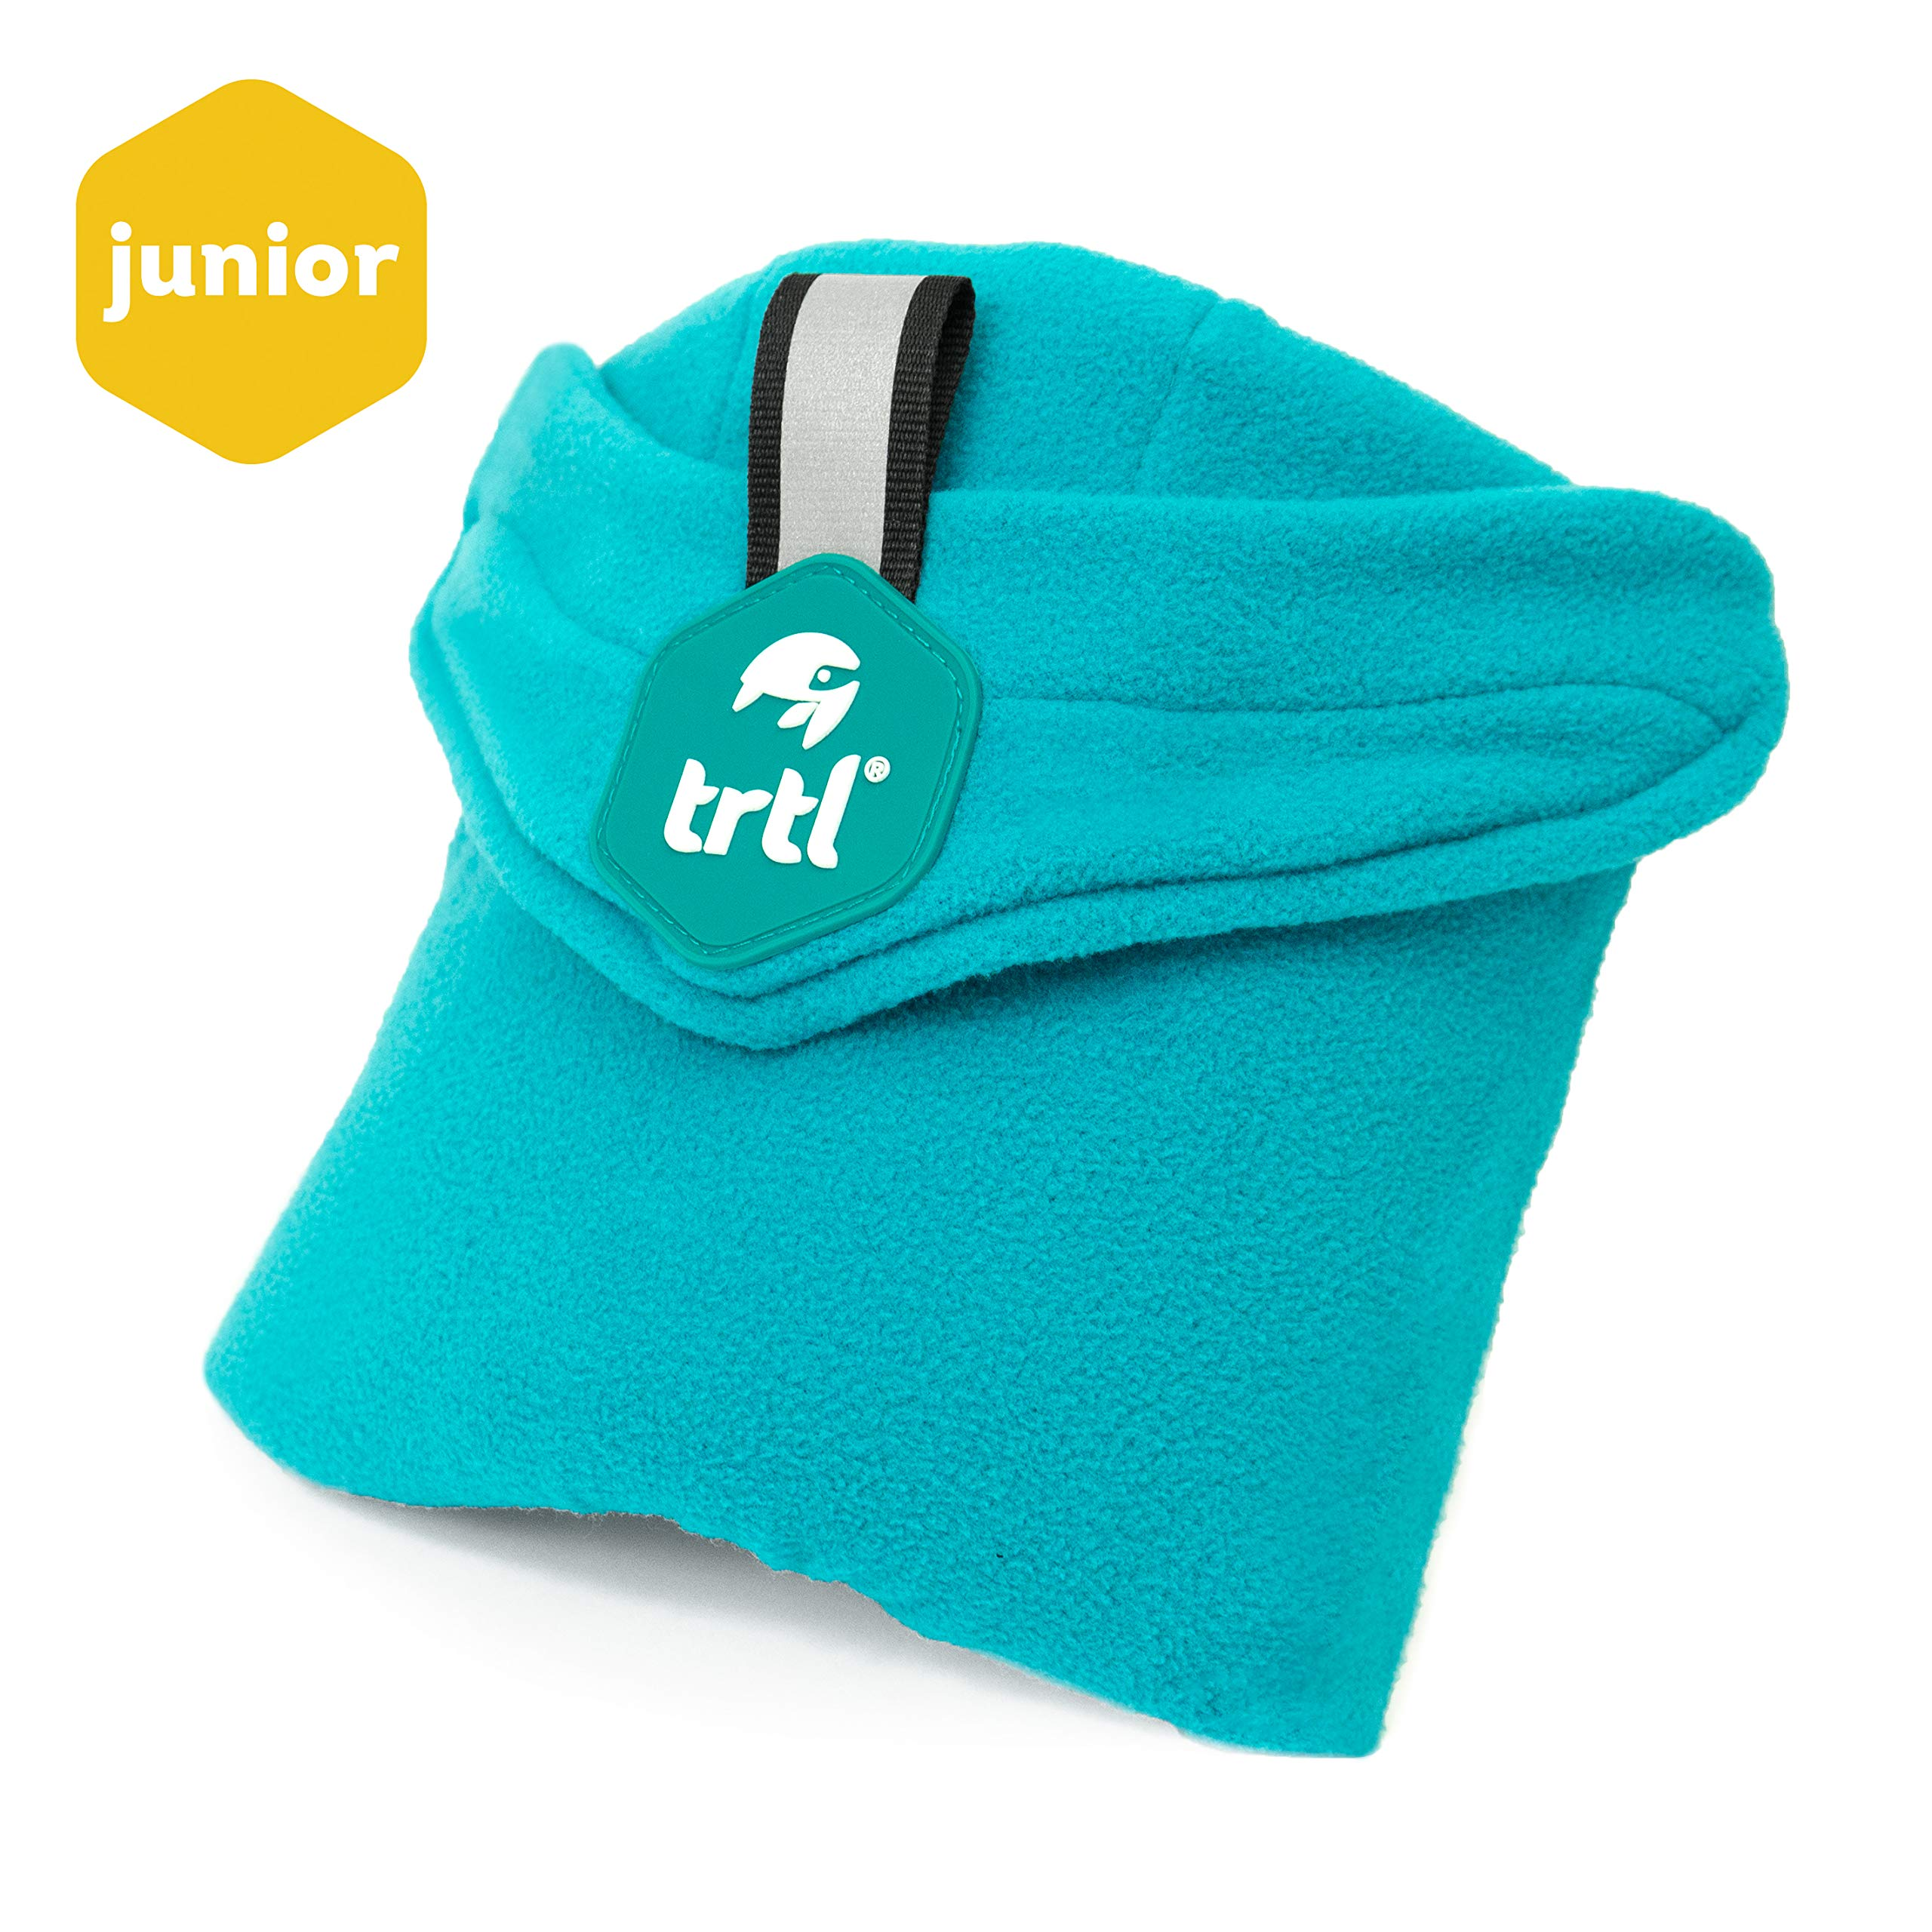 trtl Pillow Junior, Kids Travel Pillow with Built in Neck Support, Ergonomic Design and Hypoallergenic Fleece Travel Accessories for Kids Aged 8+ (Aqua Pop) by trtl